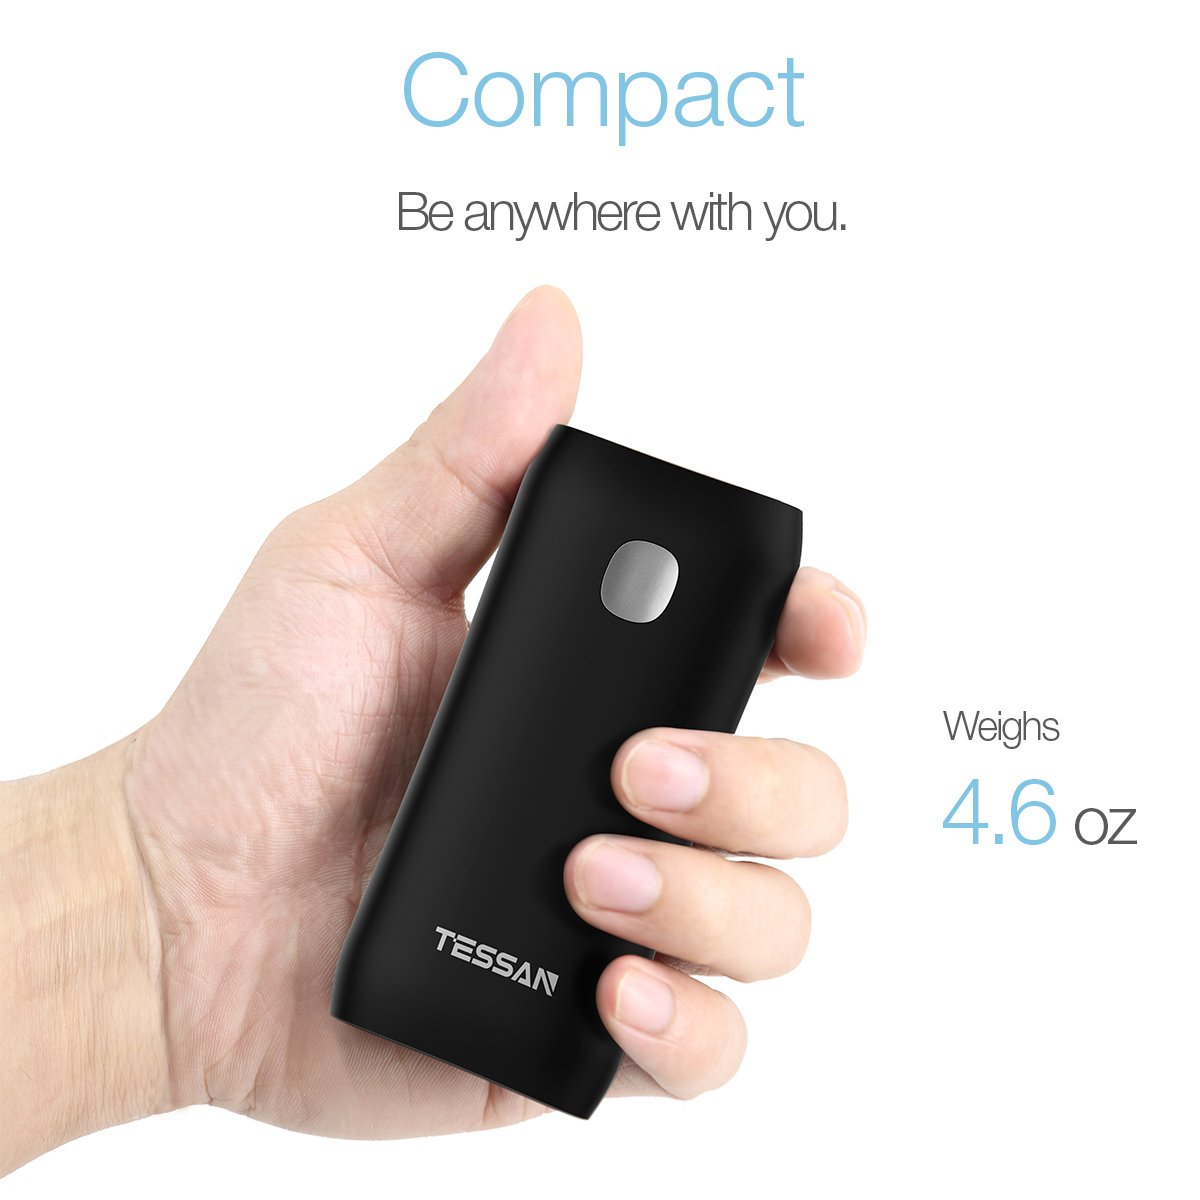 TESSAN Portable Power Bank iPhone - 5200mAh Battery Pack Quick Charge Portable Charger - Fast External Battery Pack for Cellphone, iPad, Samsung Galaxy Android